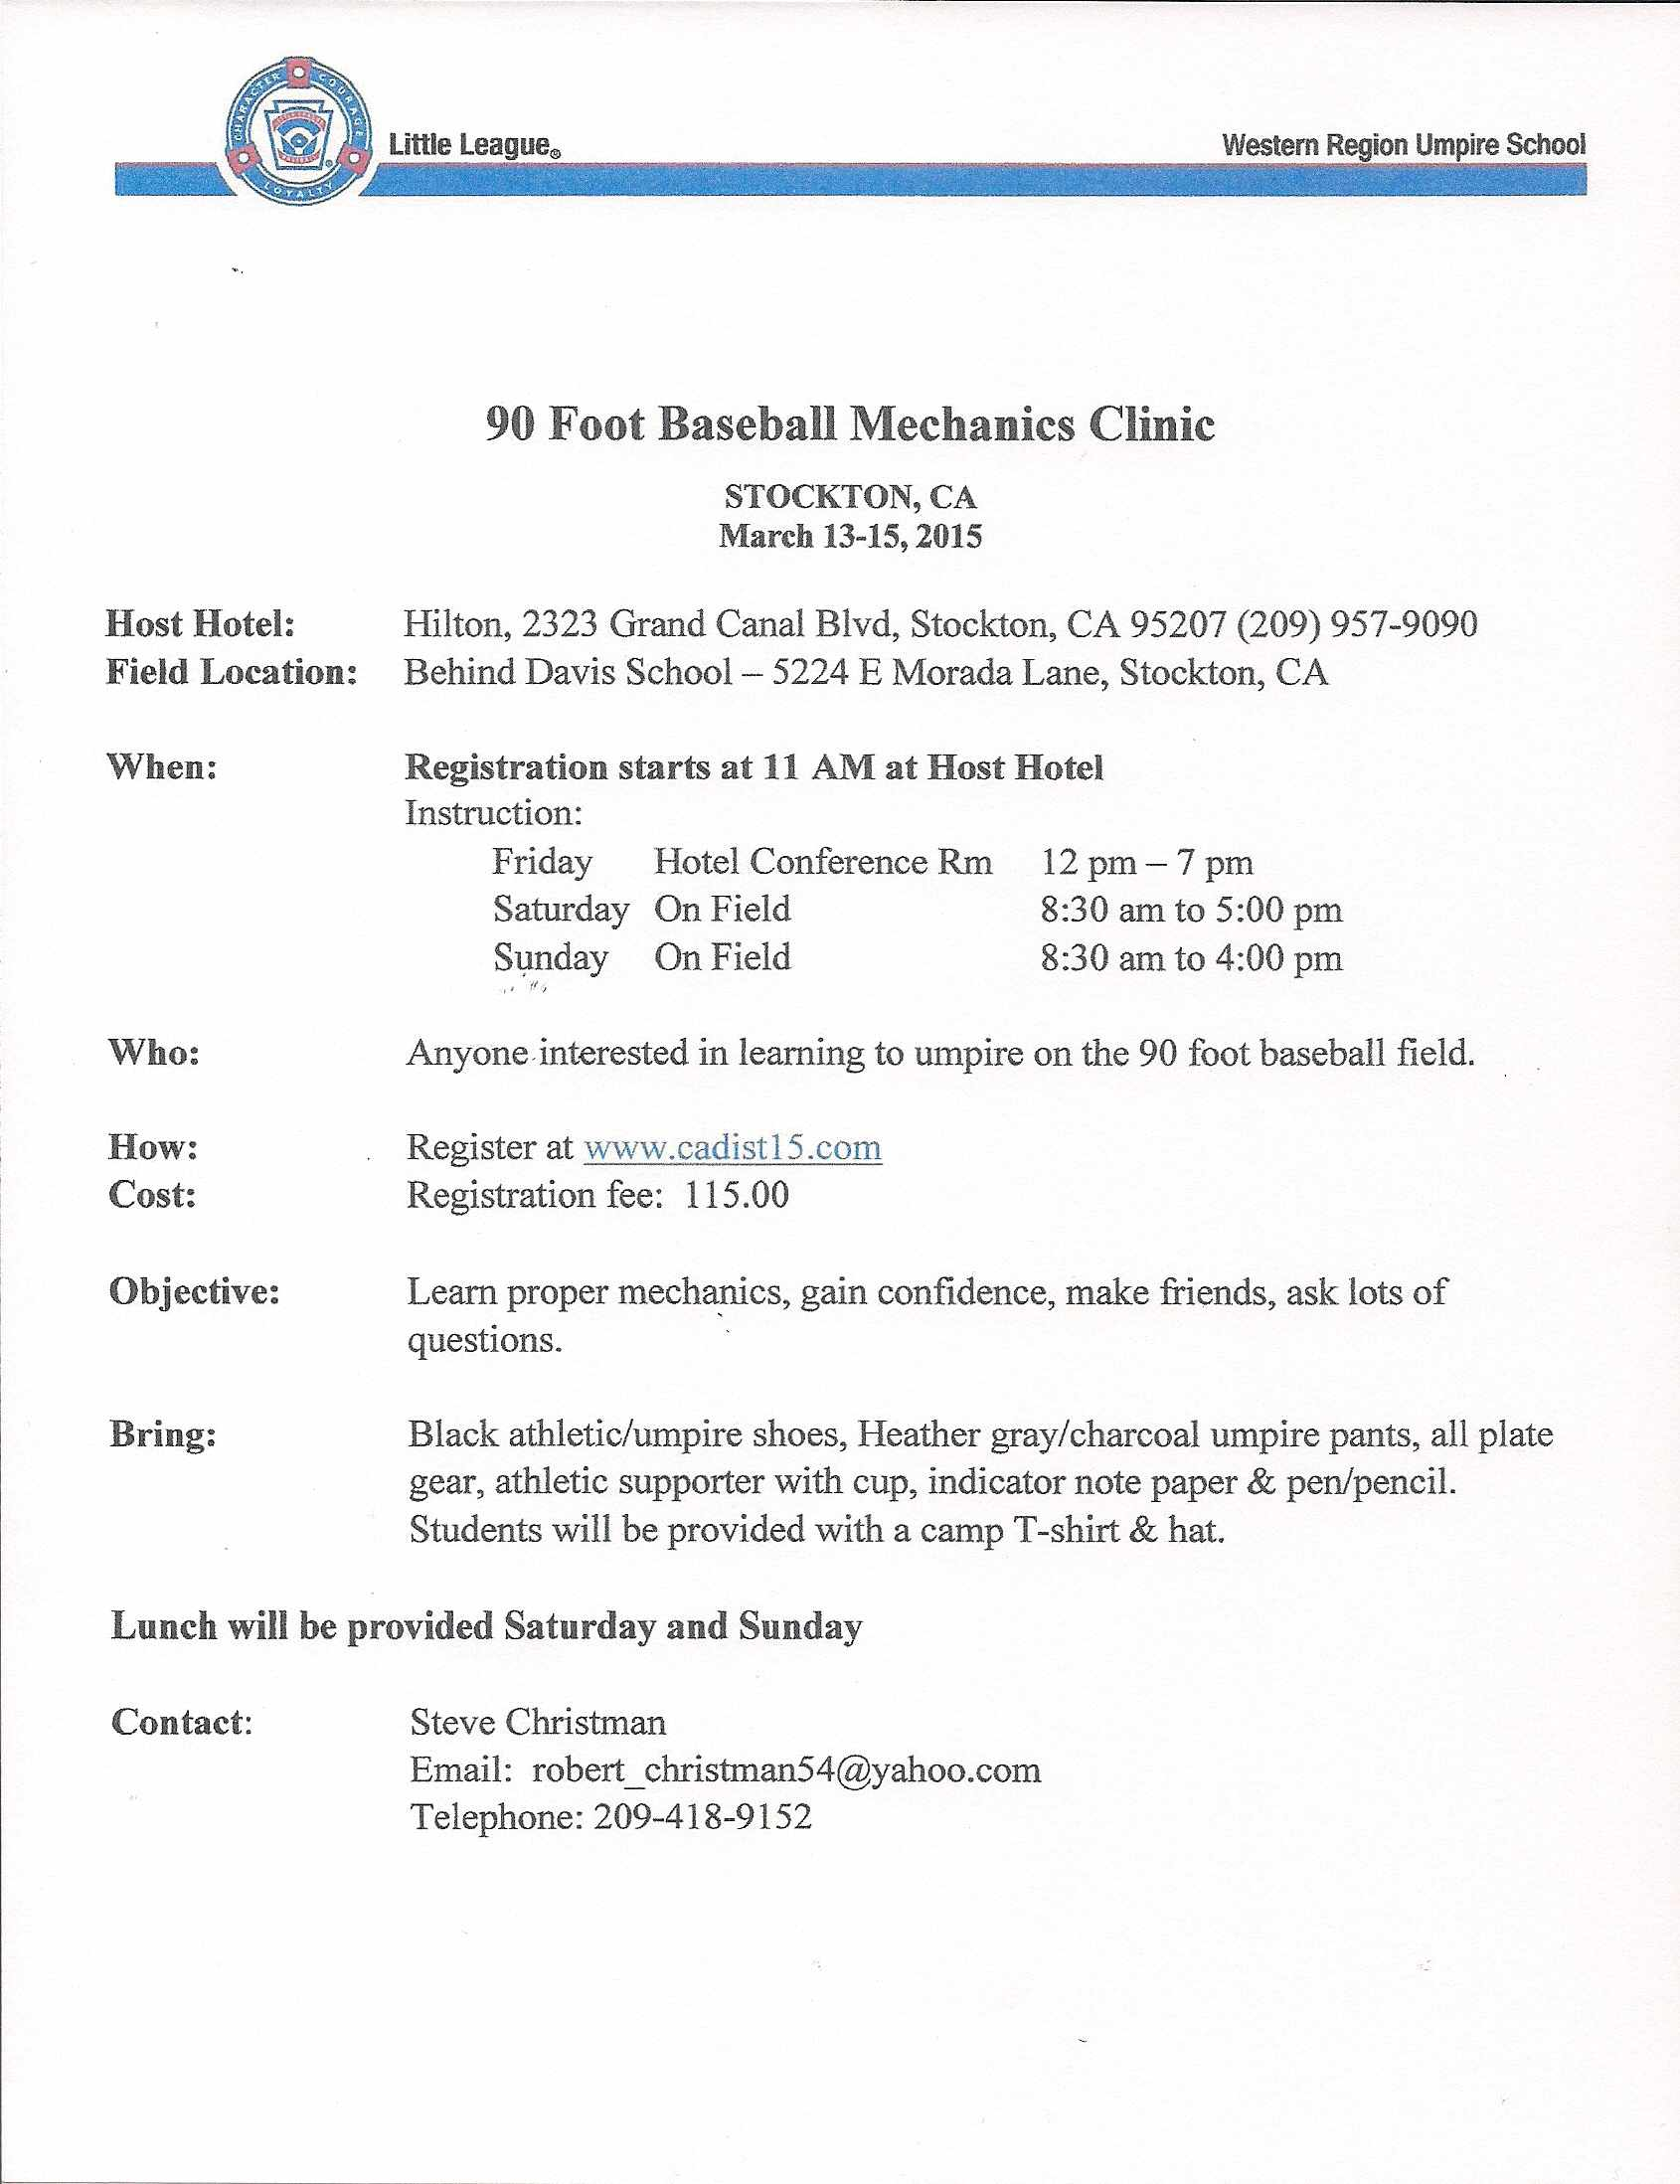 90 Foot Baseball Mechanics Clinic